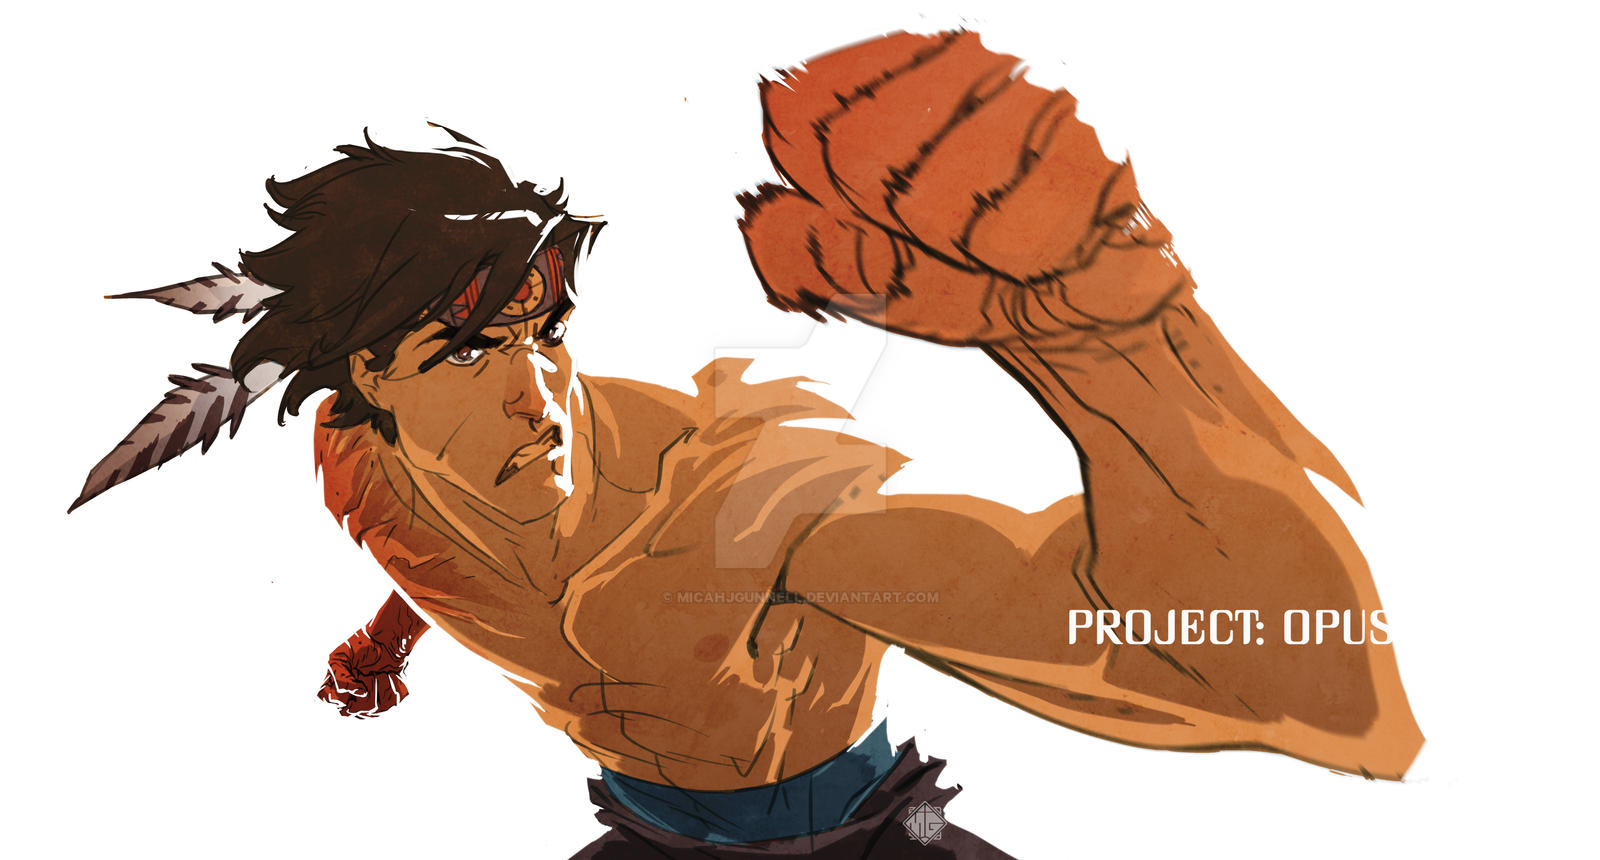 Project: Opus - R Punch by MicahJGunnell